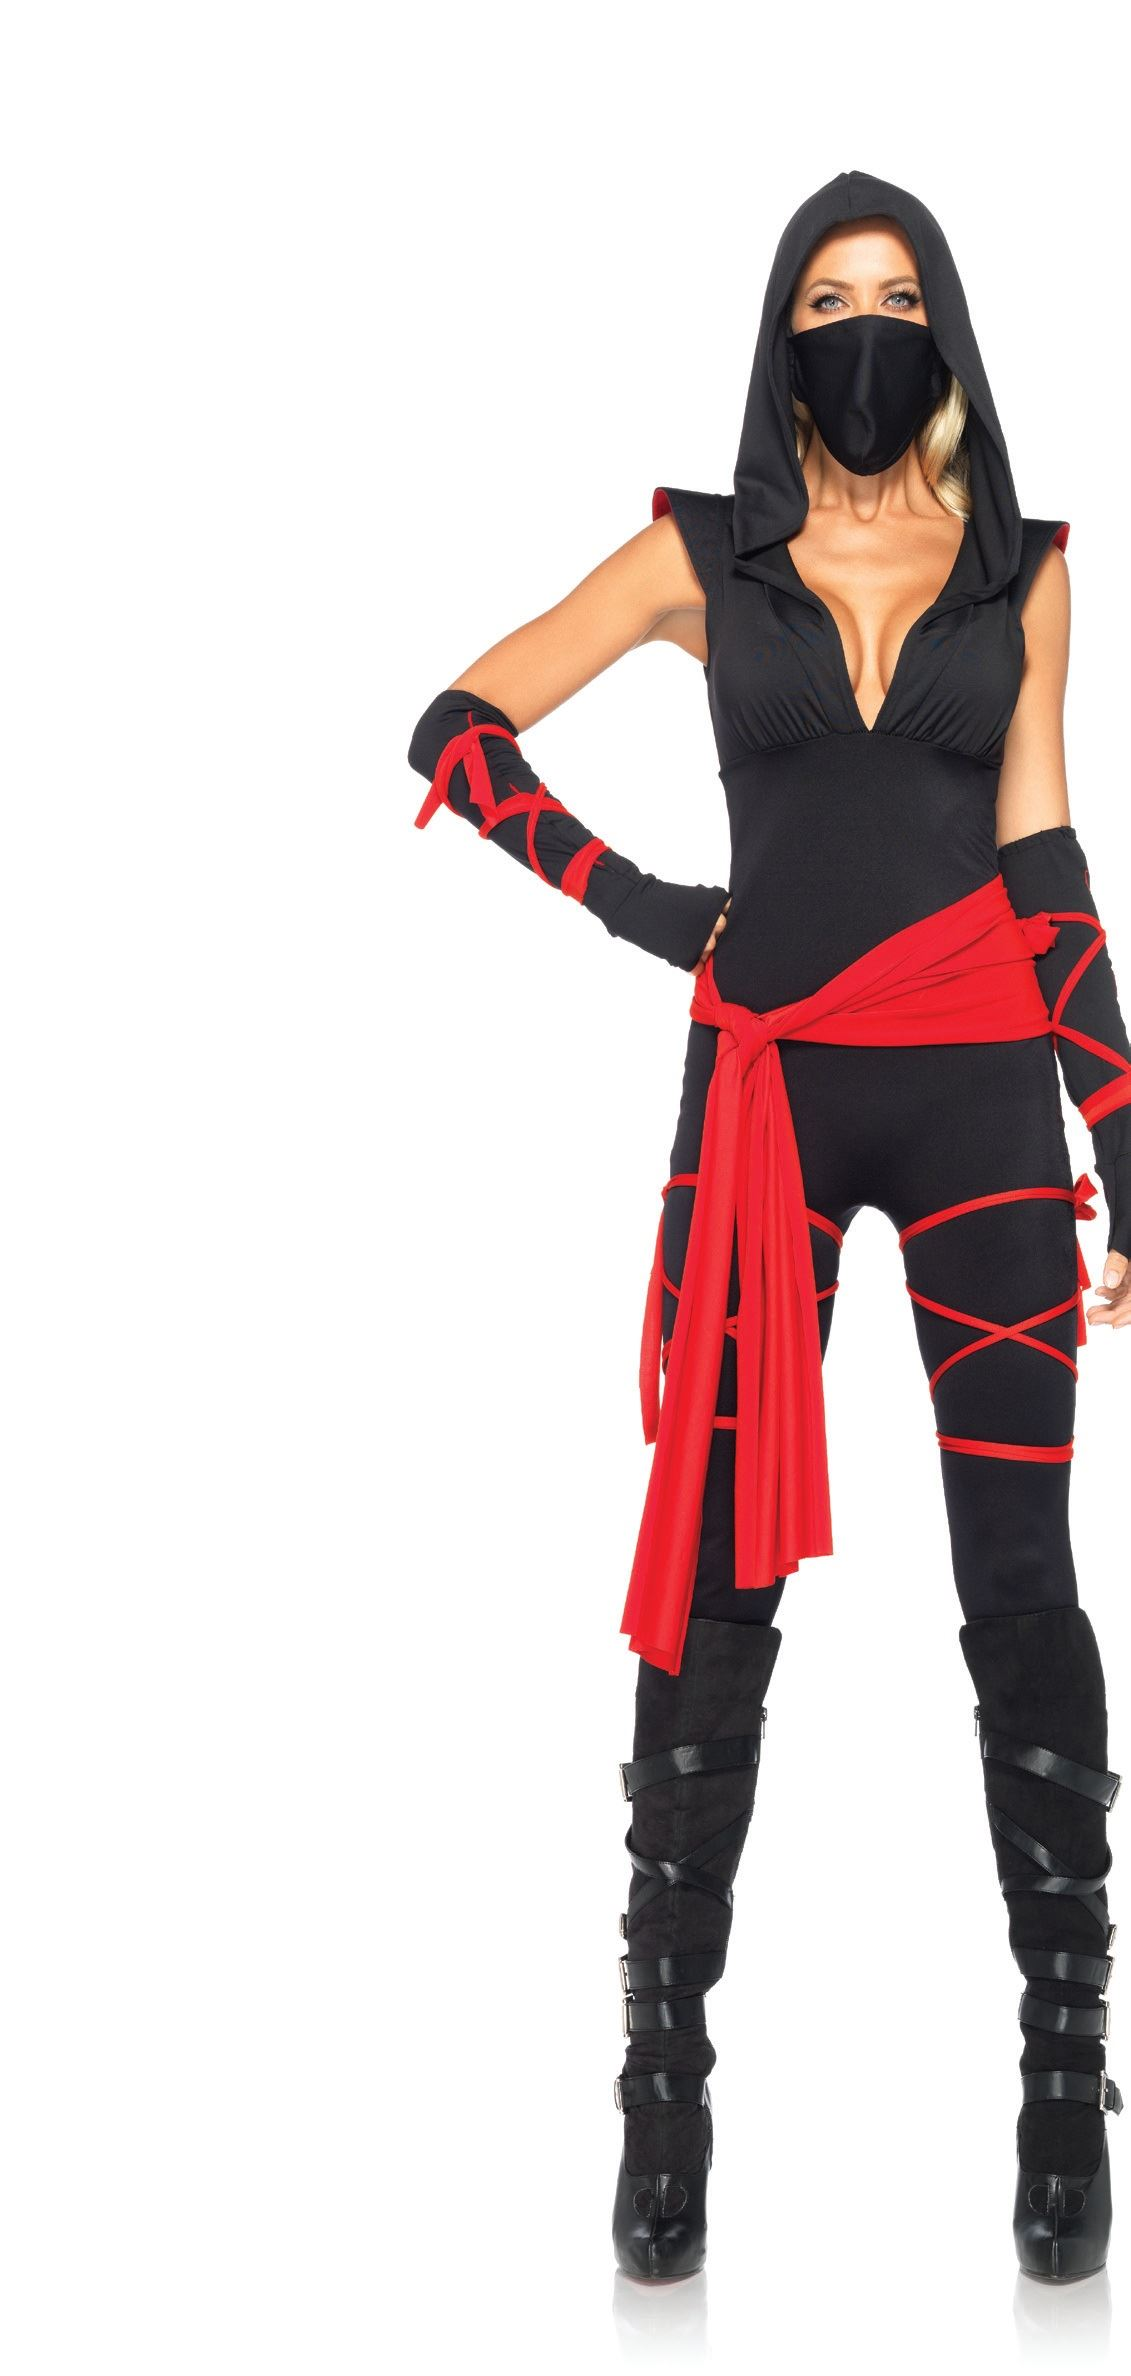 Deadly Ninja Women Halloween Costume  $28.99  The Costume Land